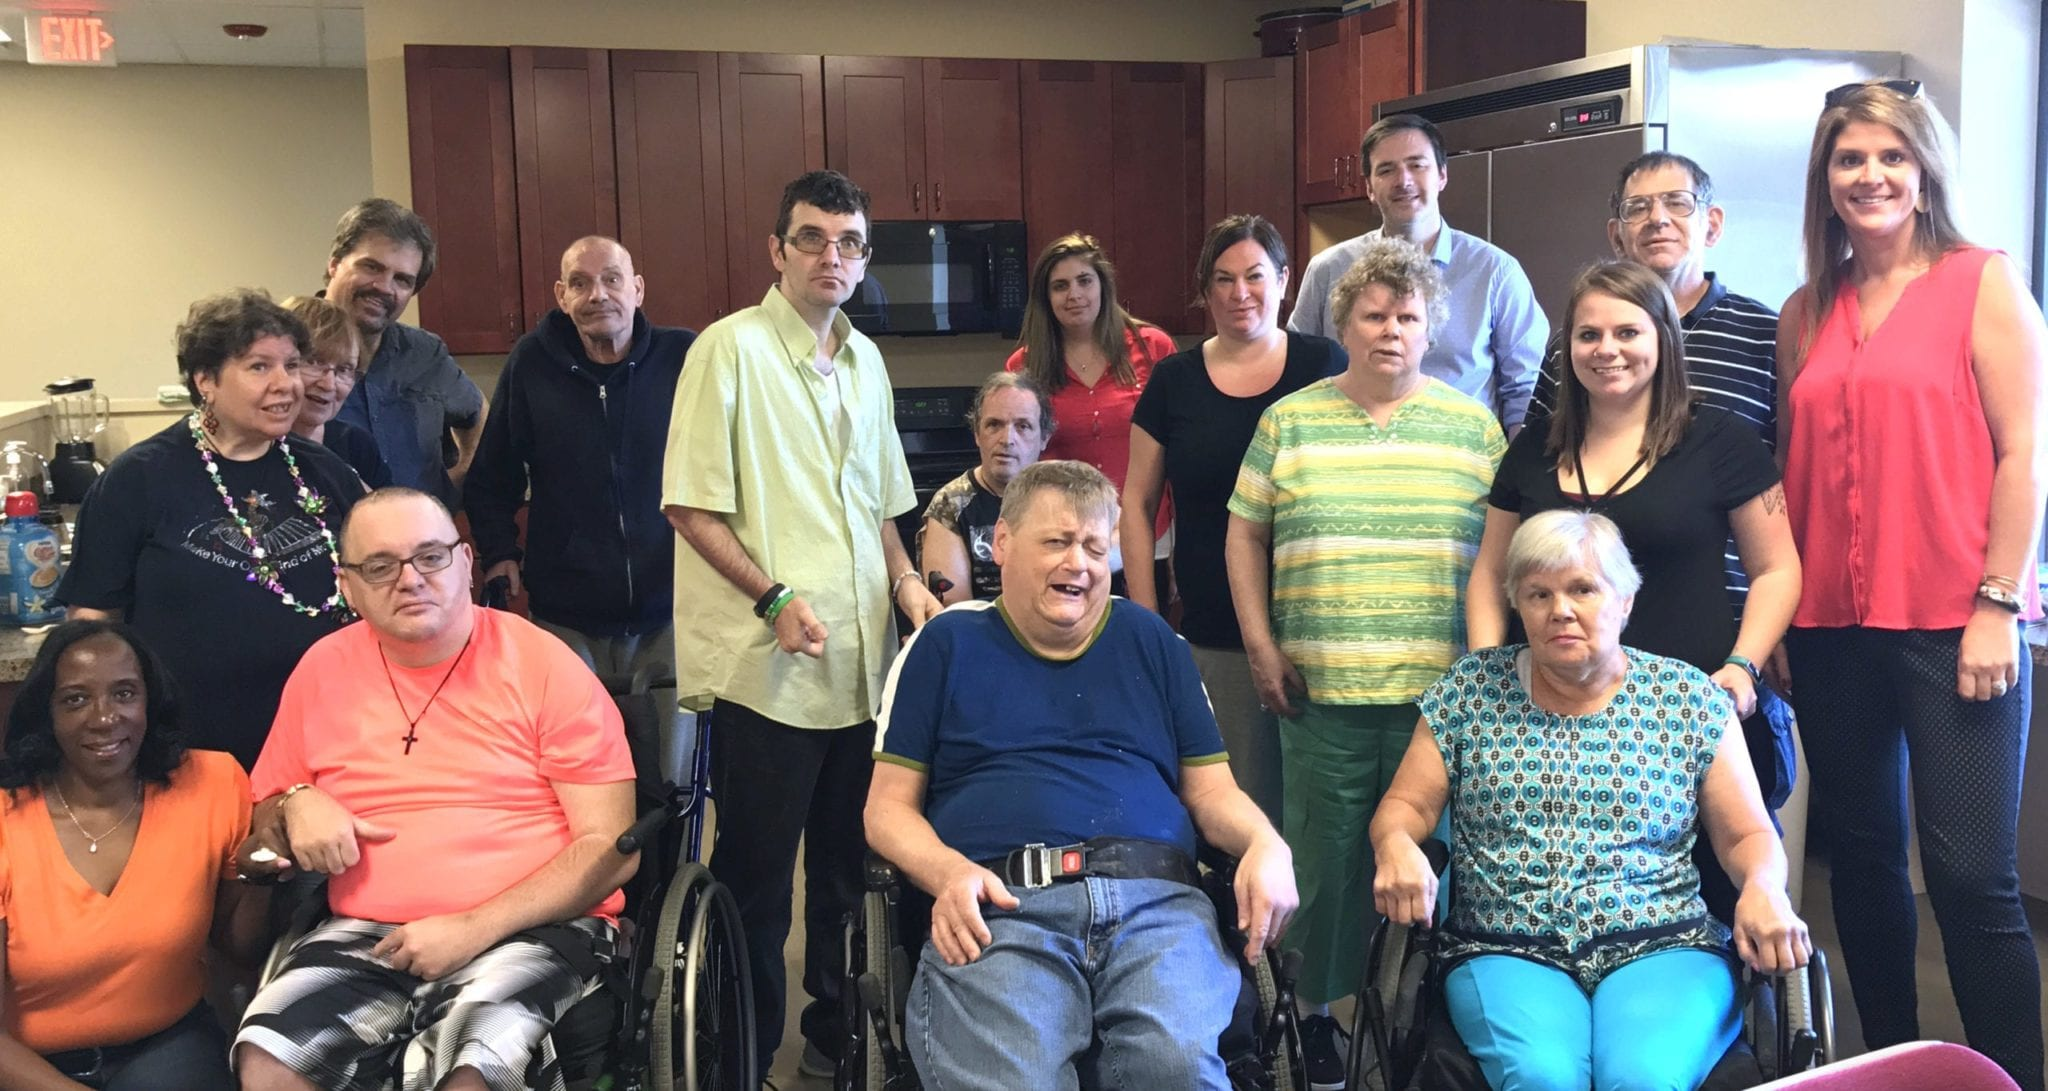 AccessCNY expands Art and Music Center for individuals with disabilities